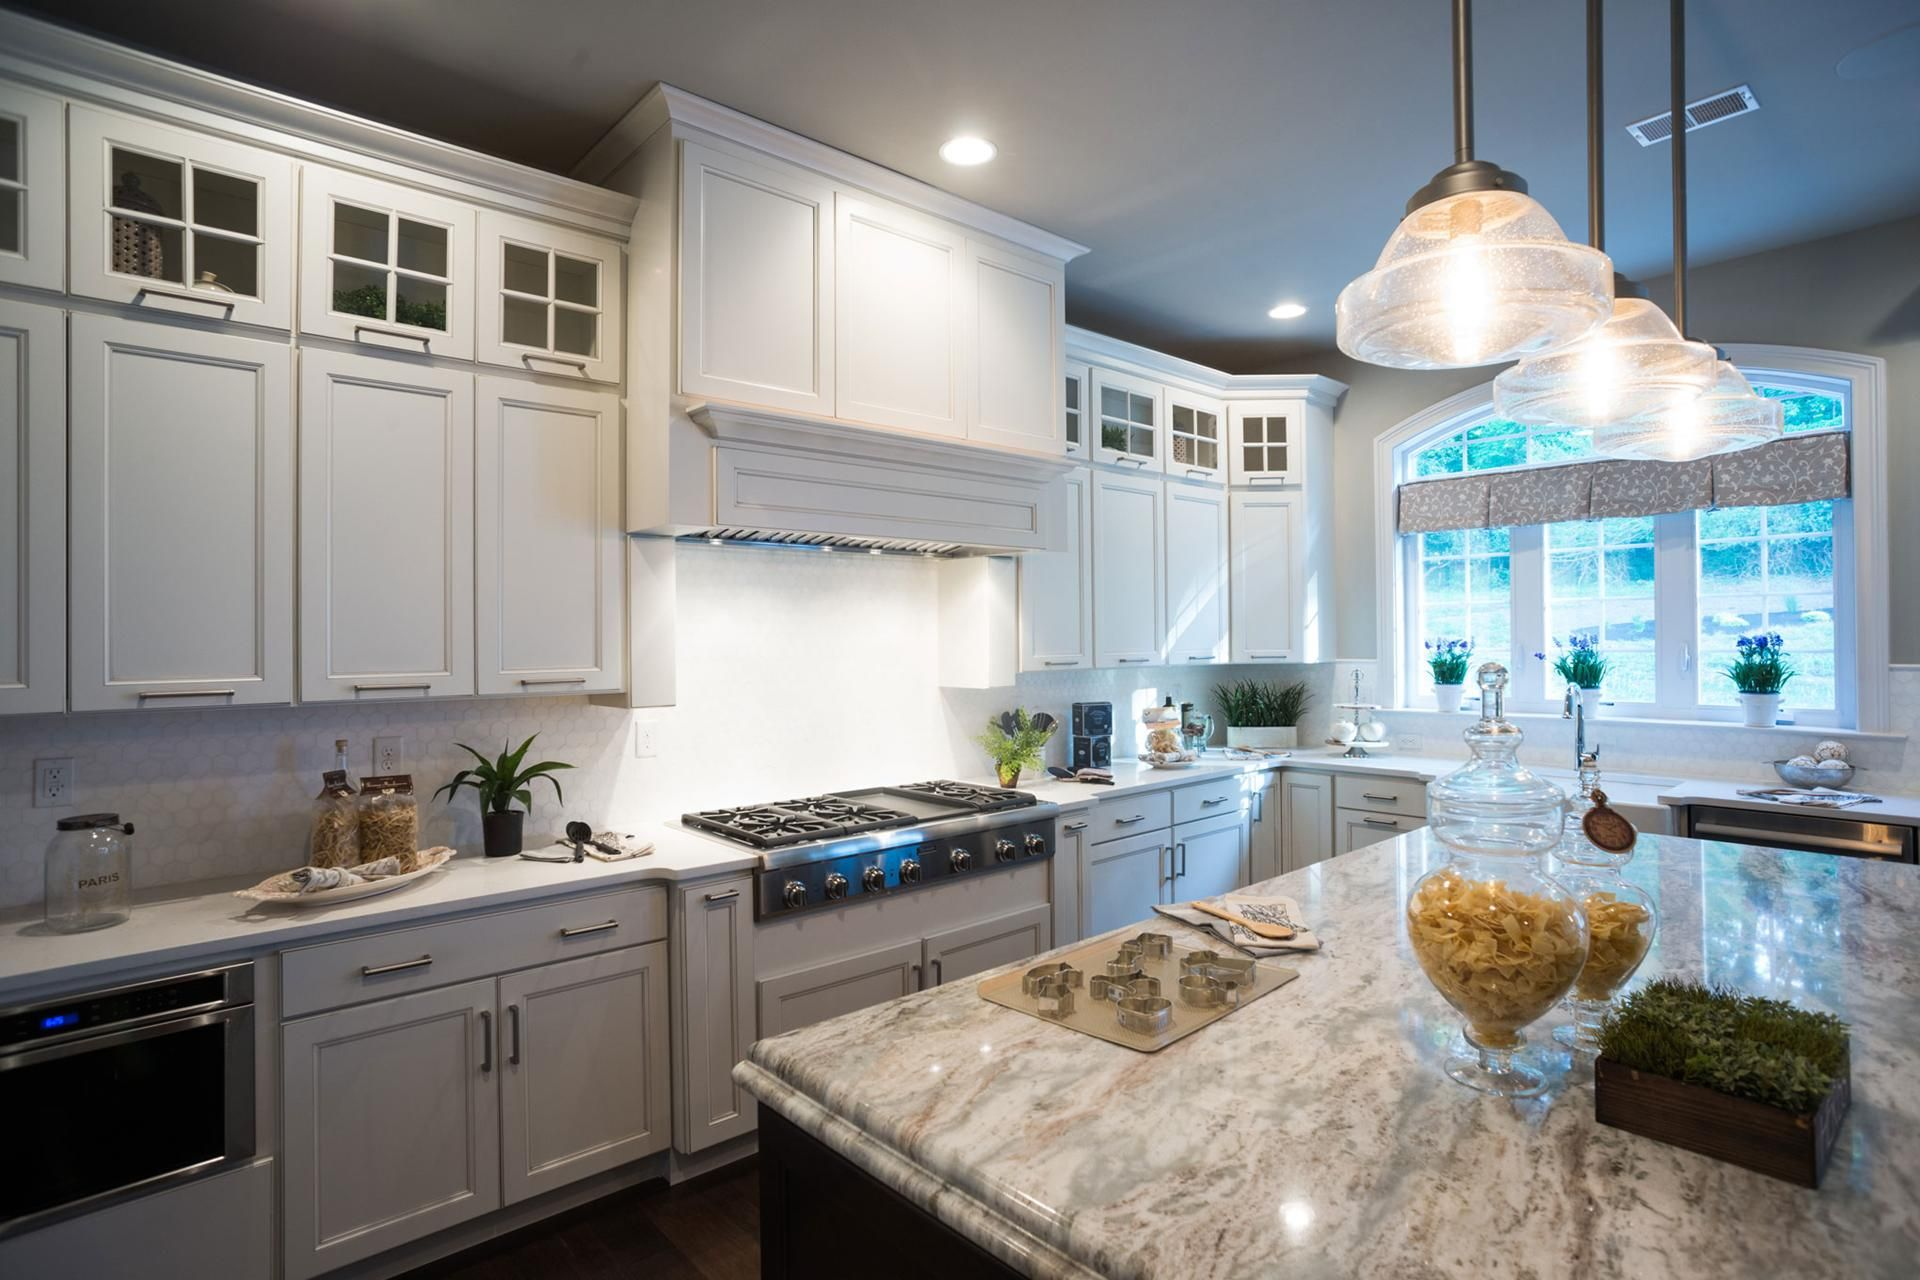 A Top Row Of Glass Fronted Cabinets Are A Distinctive Touch